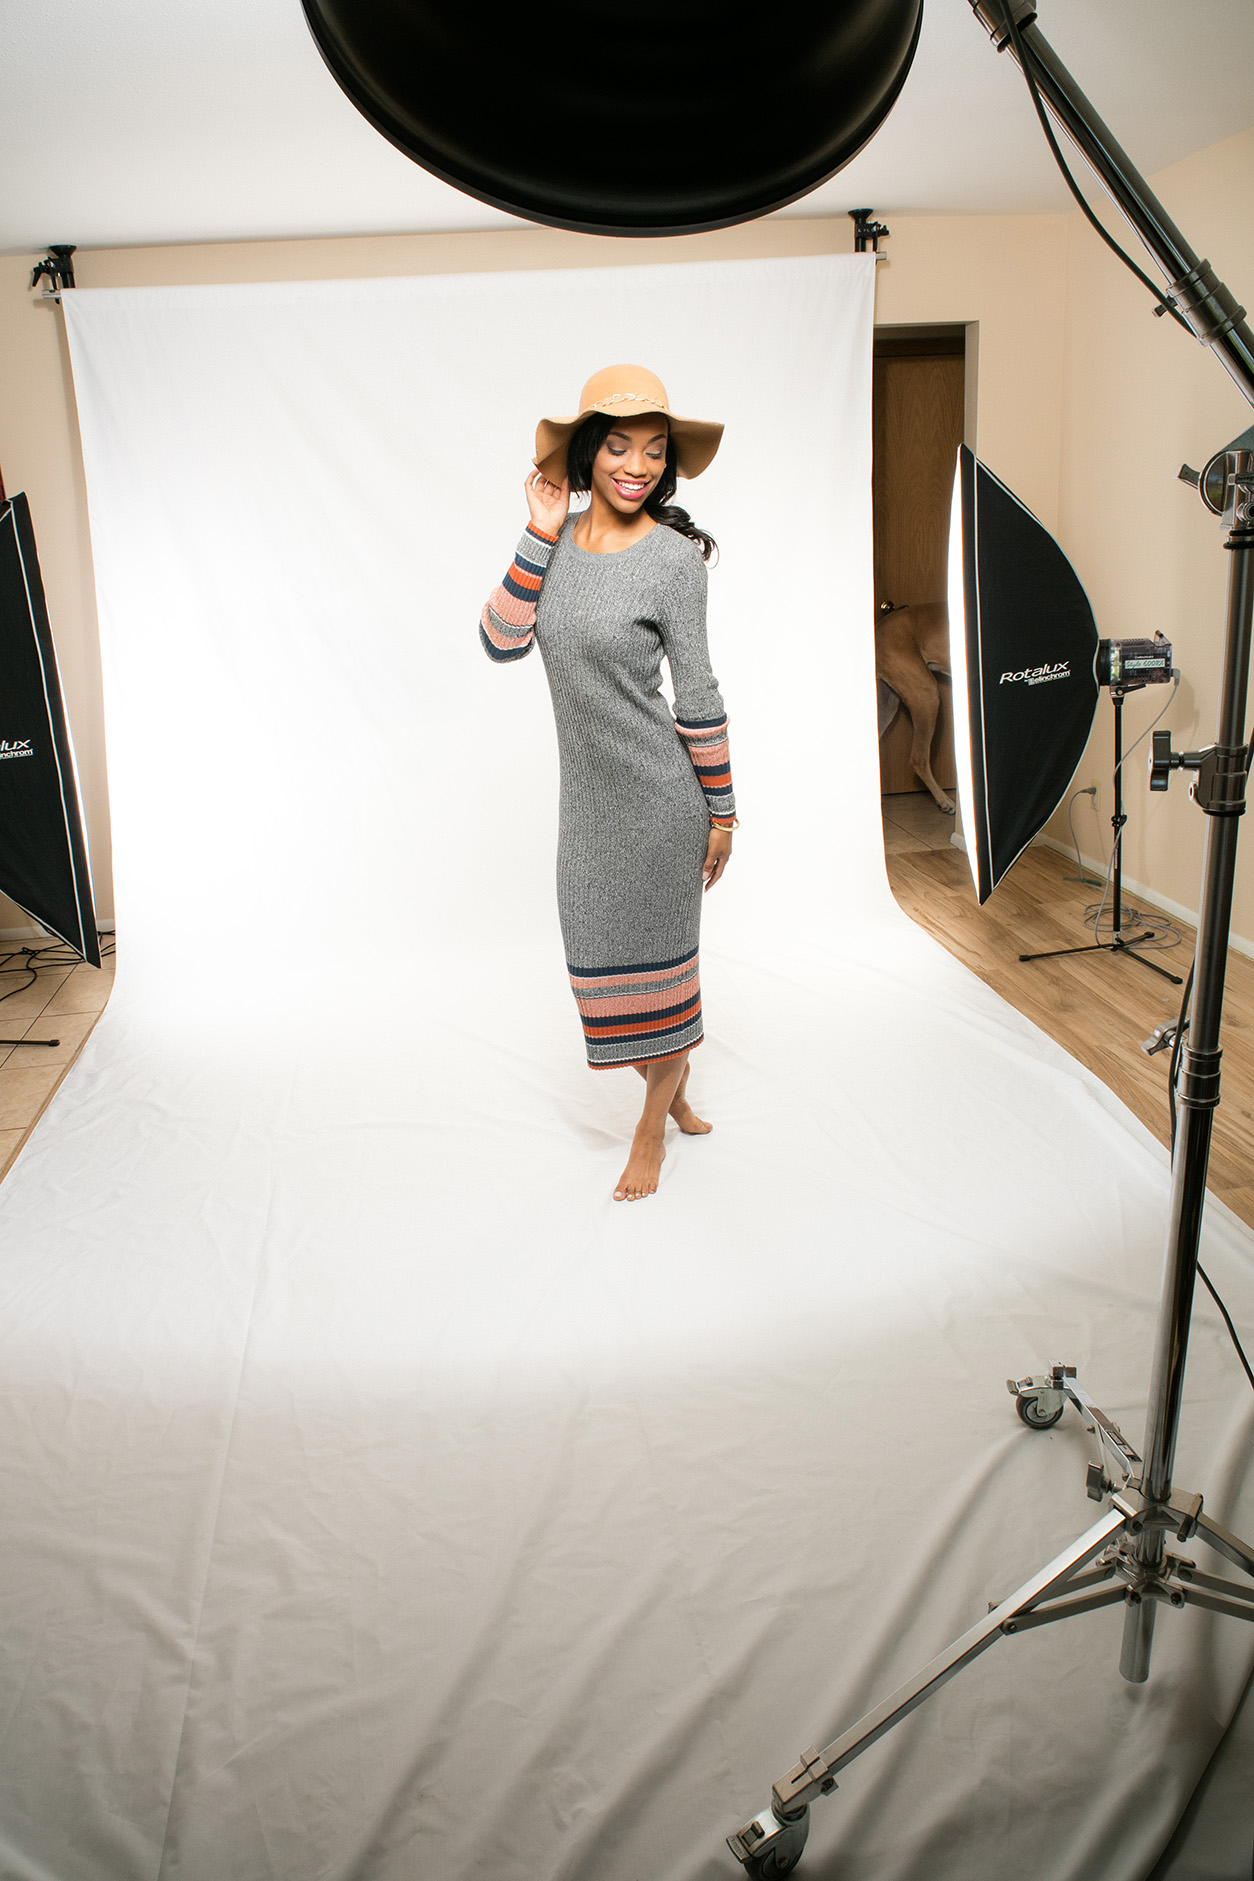 Achieve a Hi-Key Look Easily With a White Canvas Backdrop | Savage ...